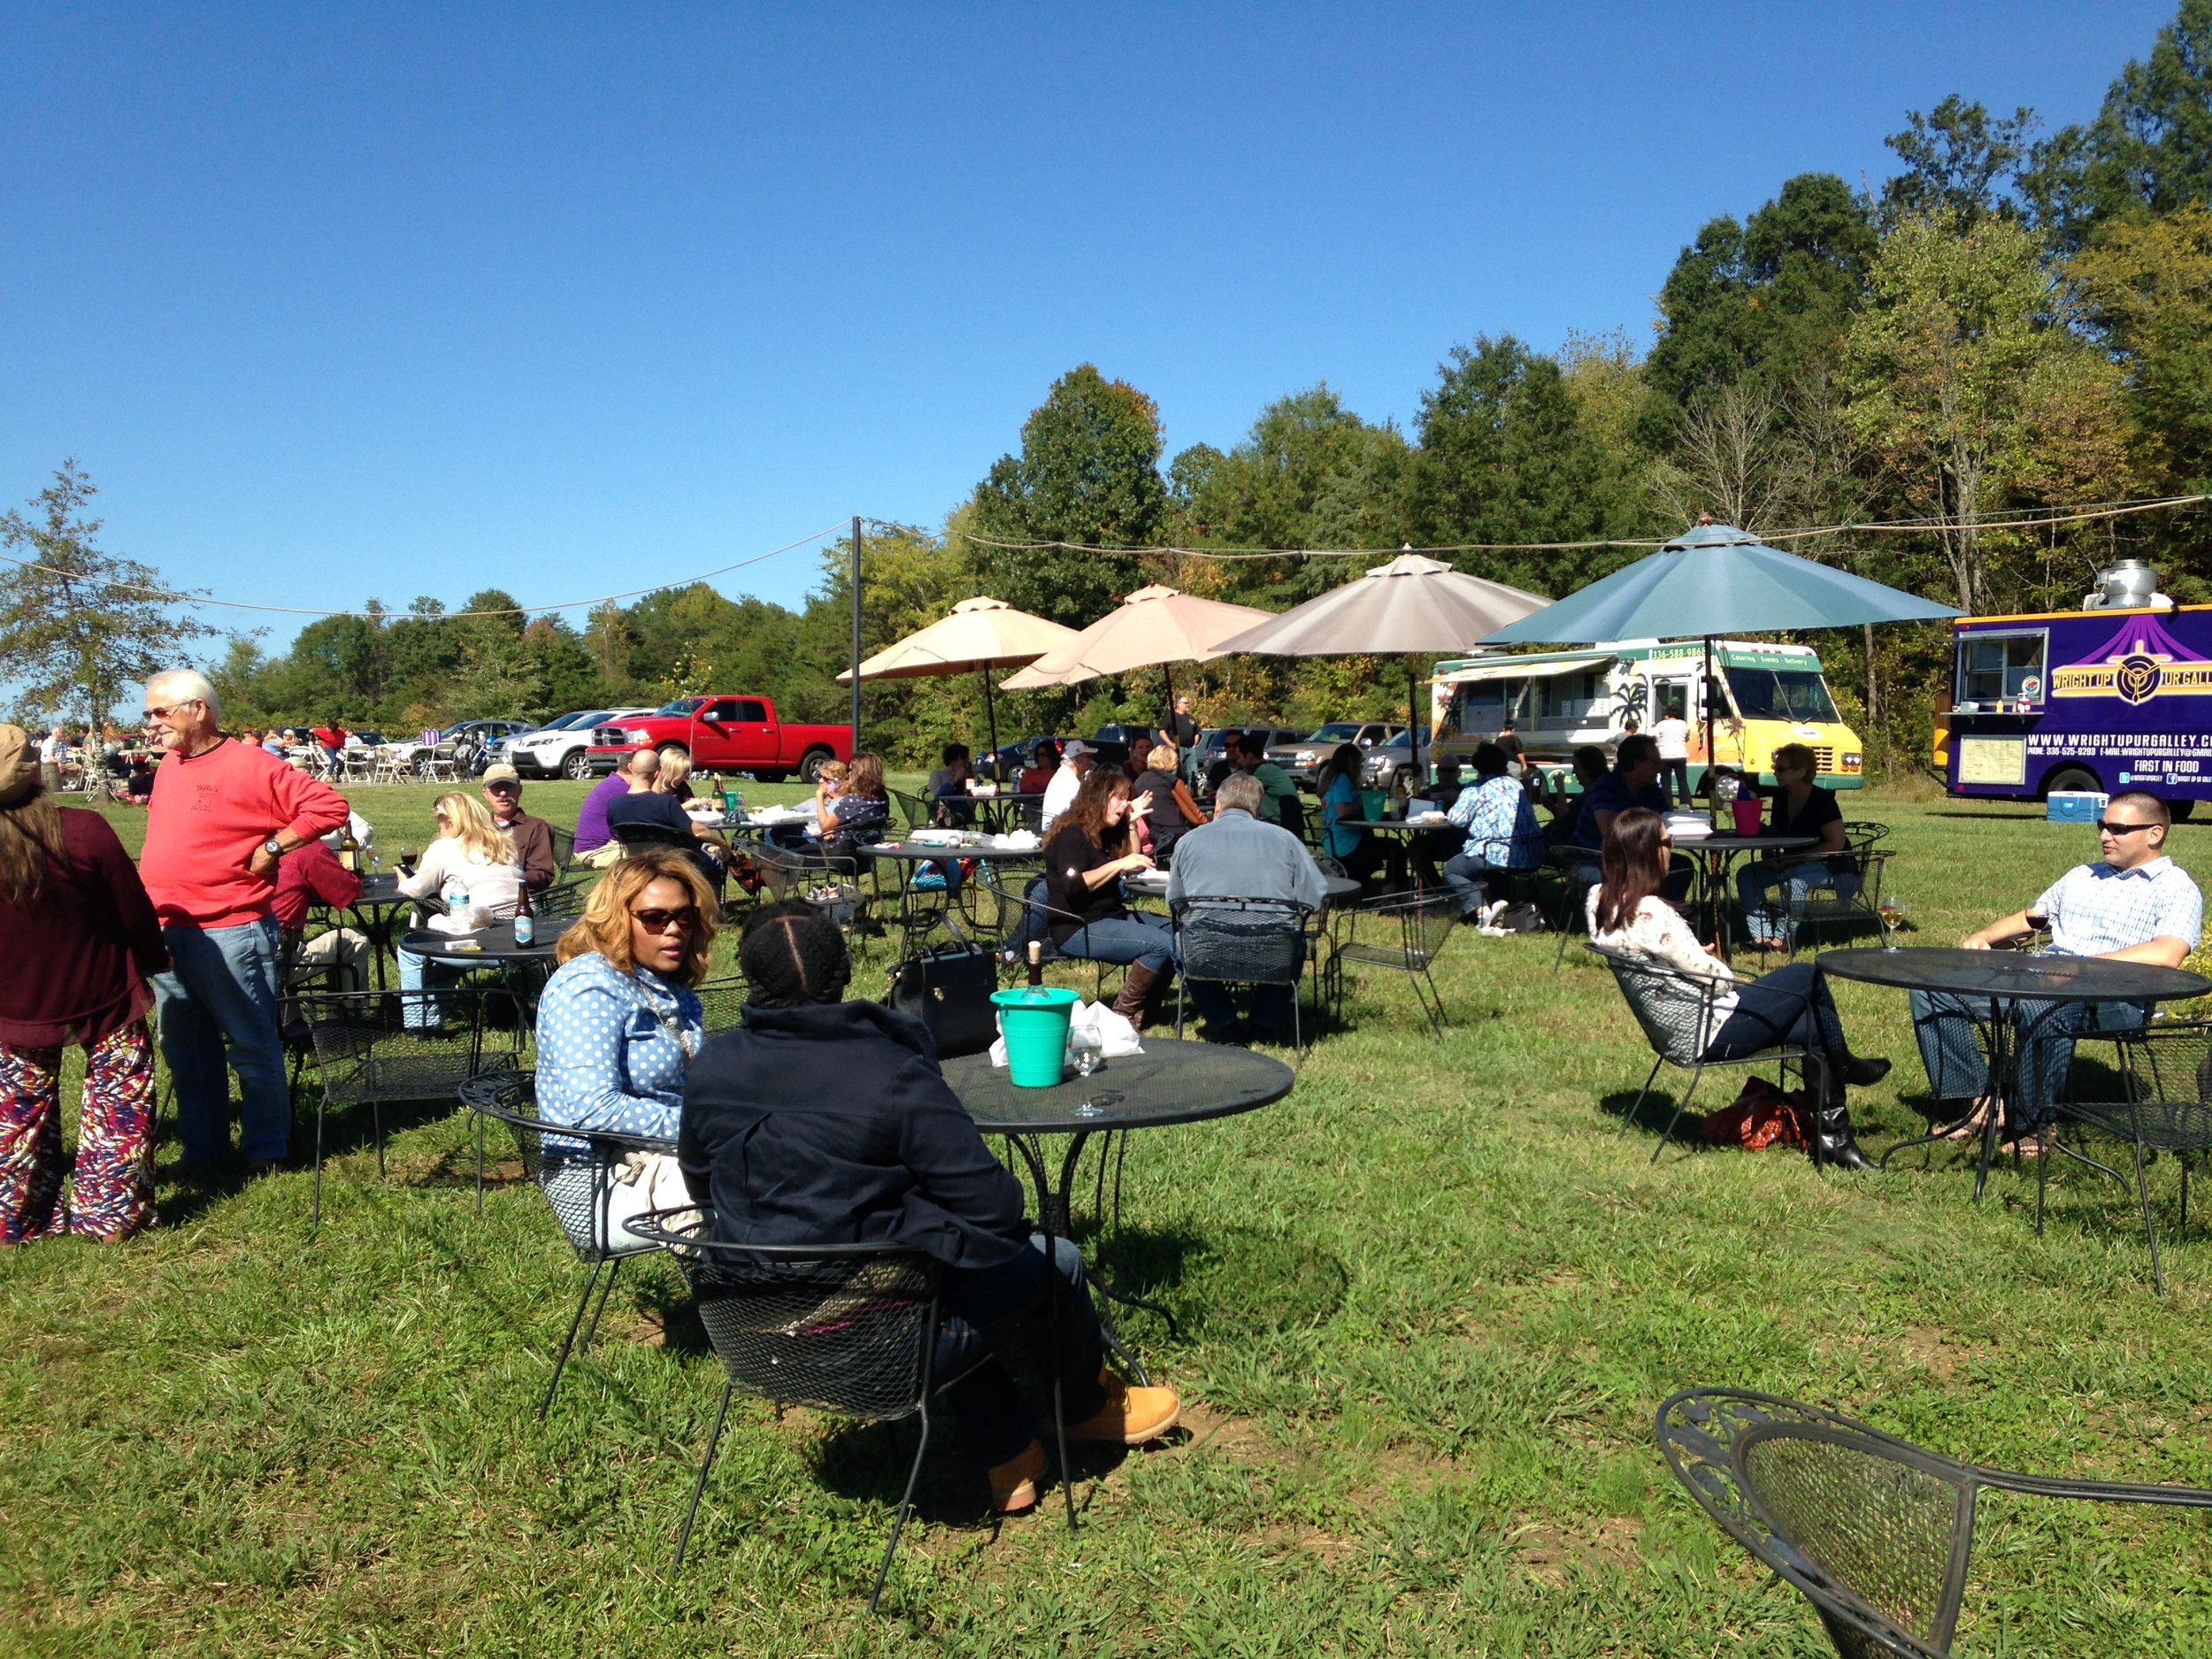 Photo of the patrons having a great day at the Fall Food Truck Festival in The Grove Winery and Vineyard, Gibsonville, North Carolina. Andrea took this photo from the stage.